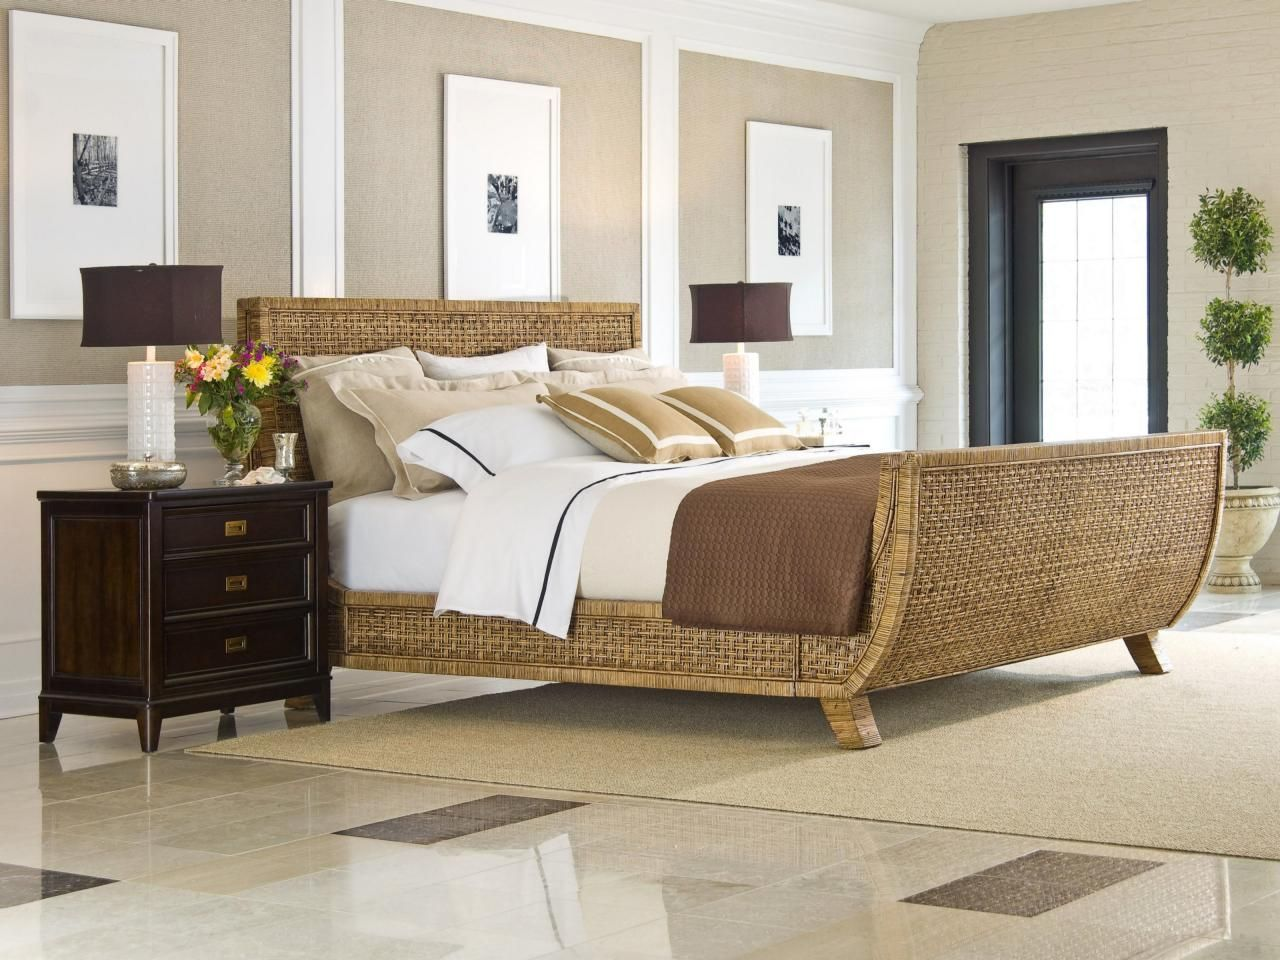 This Light Ious Bedroom Feels Like A Calm Retreat With Neutral Paneled Wallarble Floor Rattan Bed And Dark Nightstand